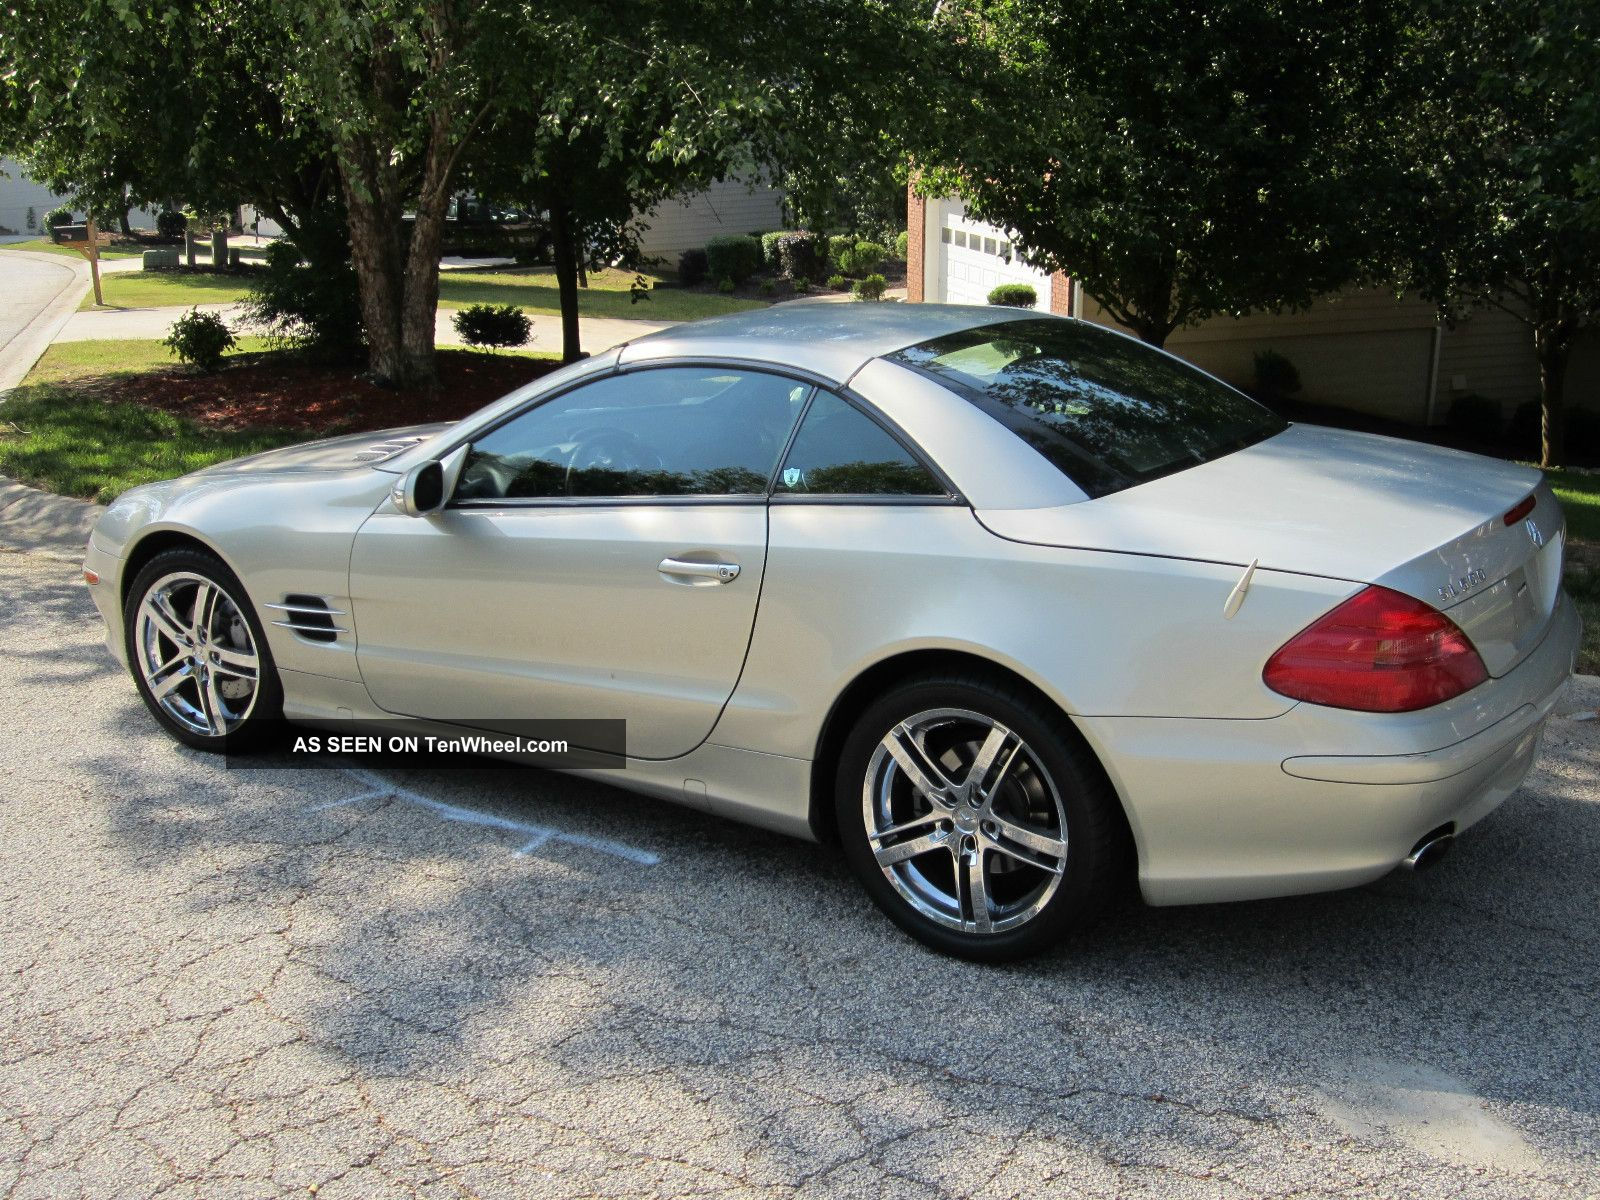 2003 mercedes benz sl500 designo edition convertible ready for spring. Black Bedroom Furniture Sets. Home Design Ideas